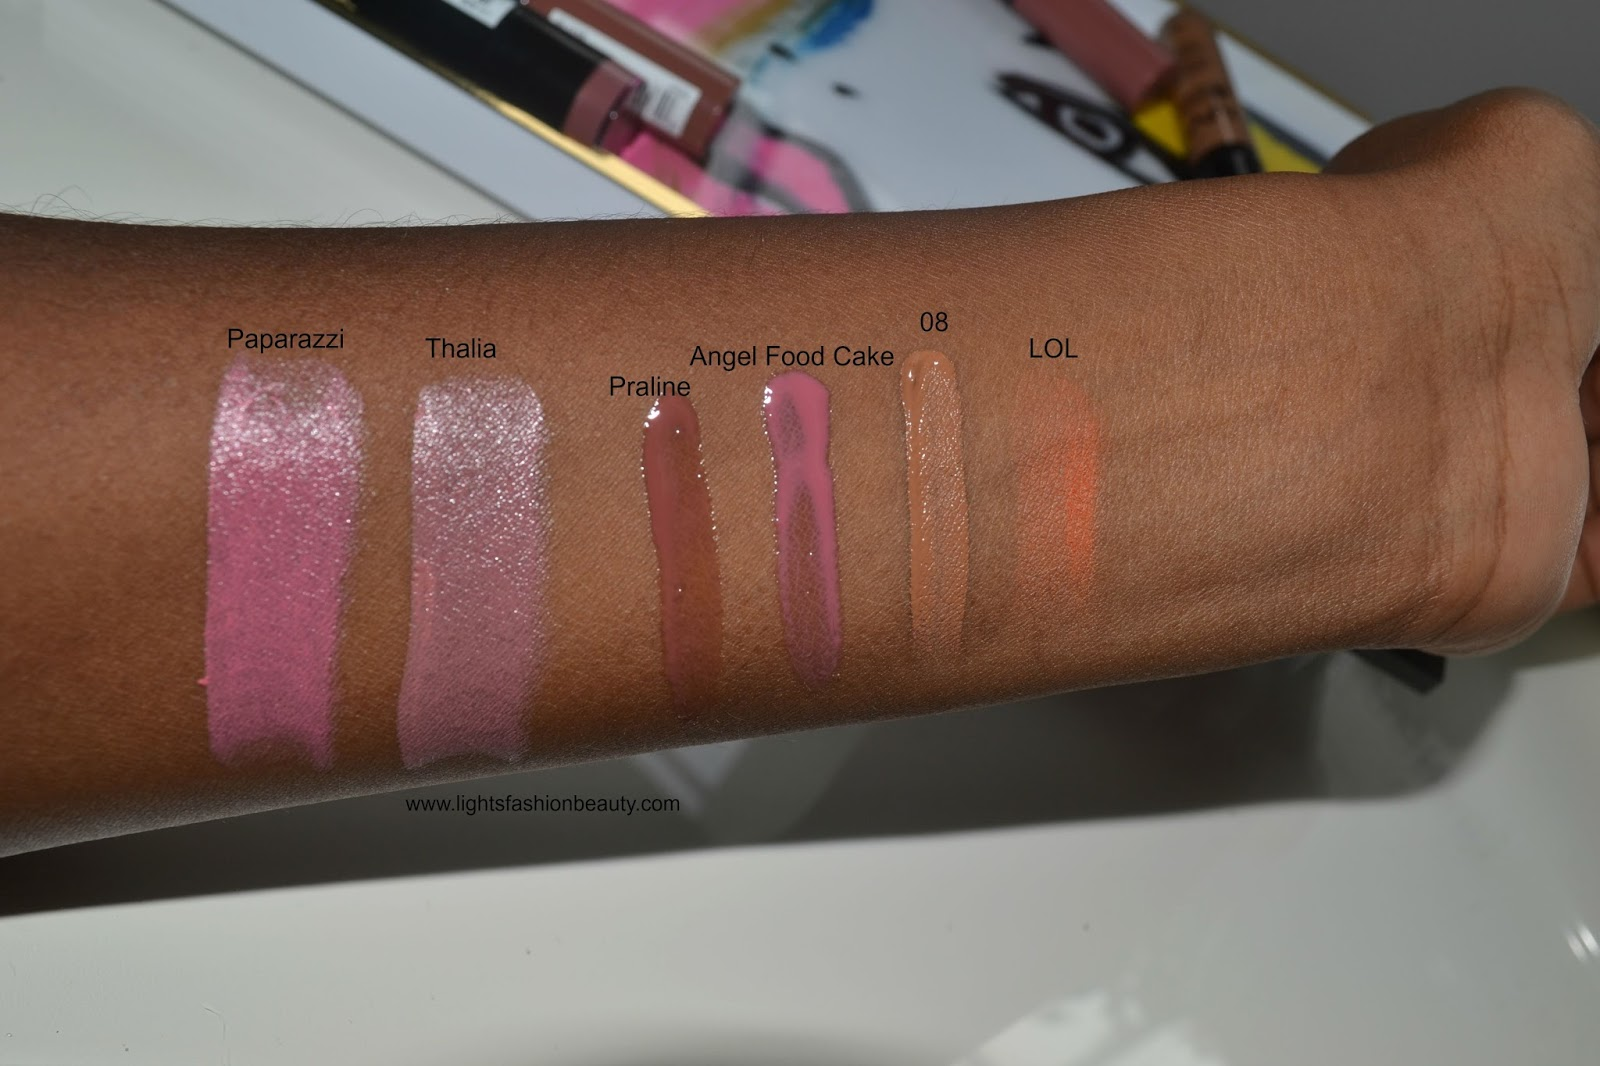 nyx cosmetics butter gloss swatches dark skin, nyx cosmetics in canada, lightsfashionbeauty, lightsfashionbeauty nyx cosmetics, canadian blogger, montreal blogger,